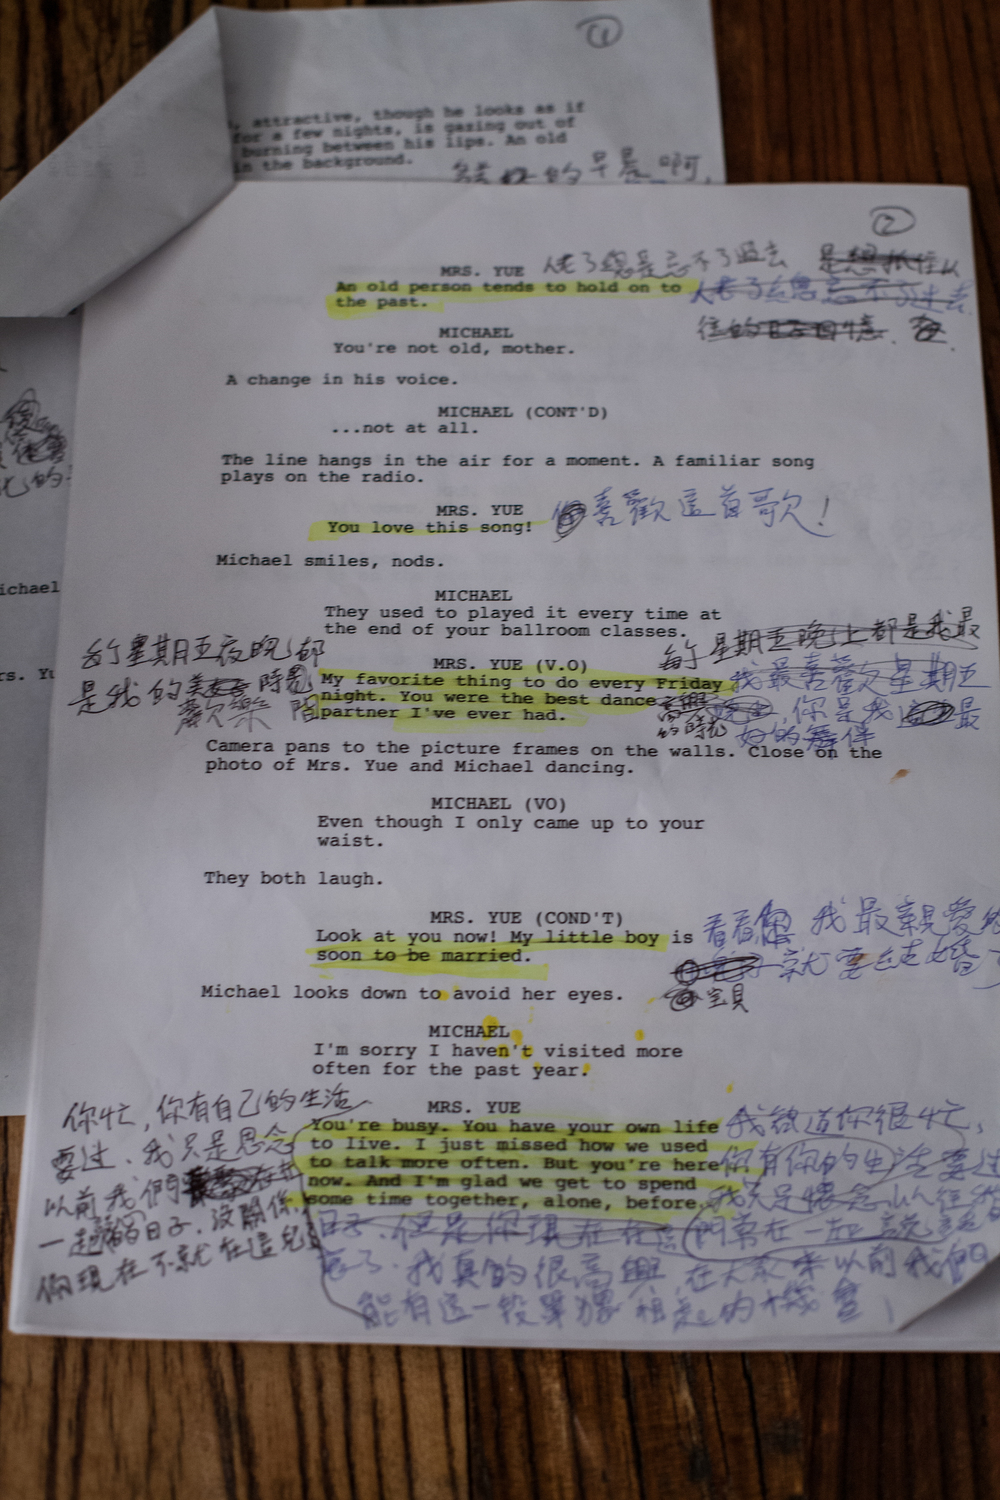 The shooting script.